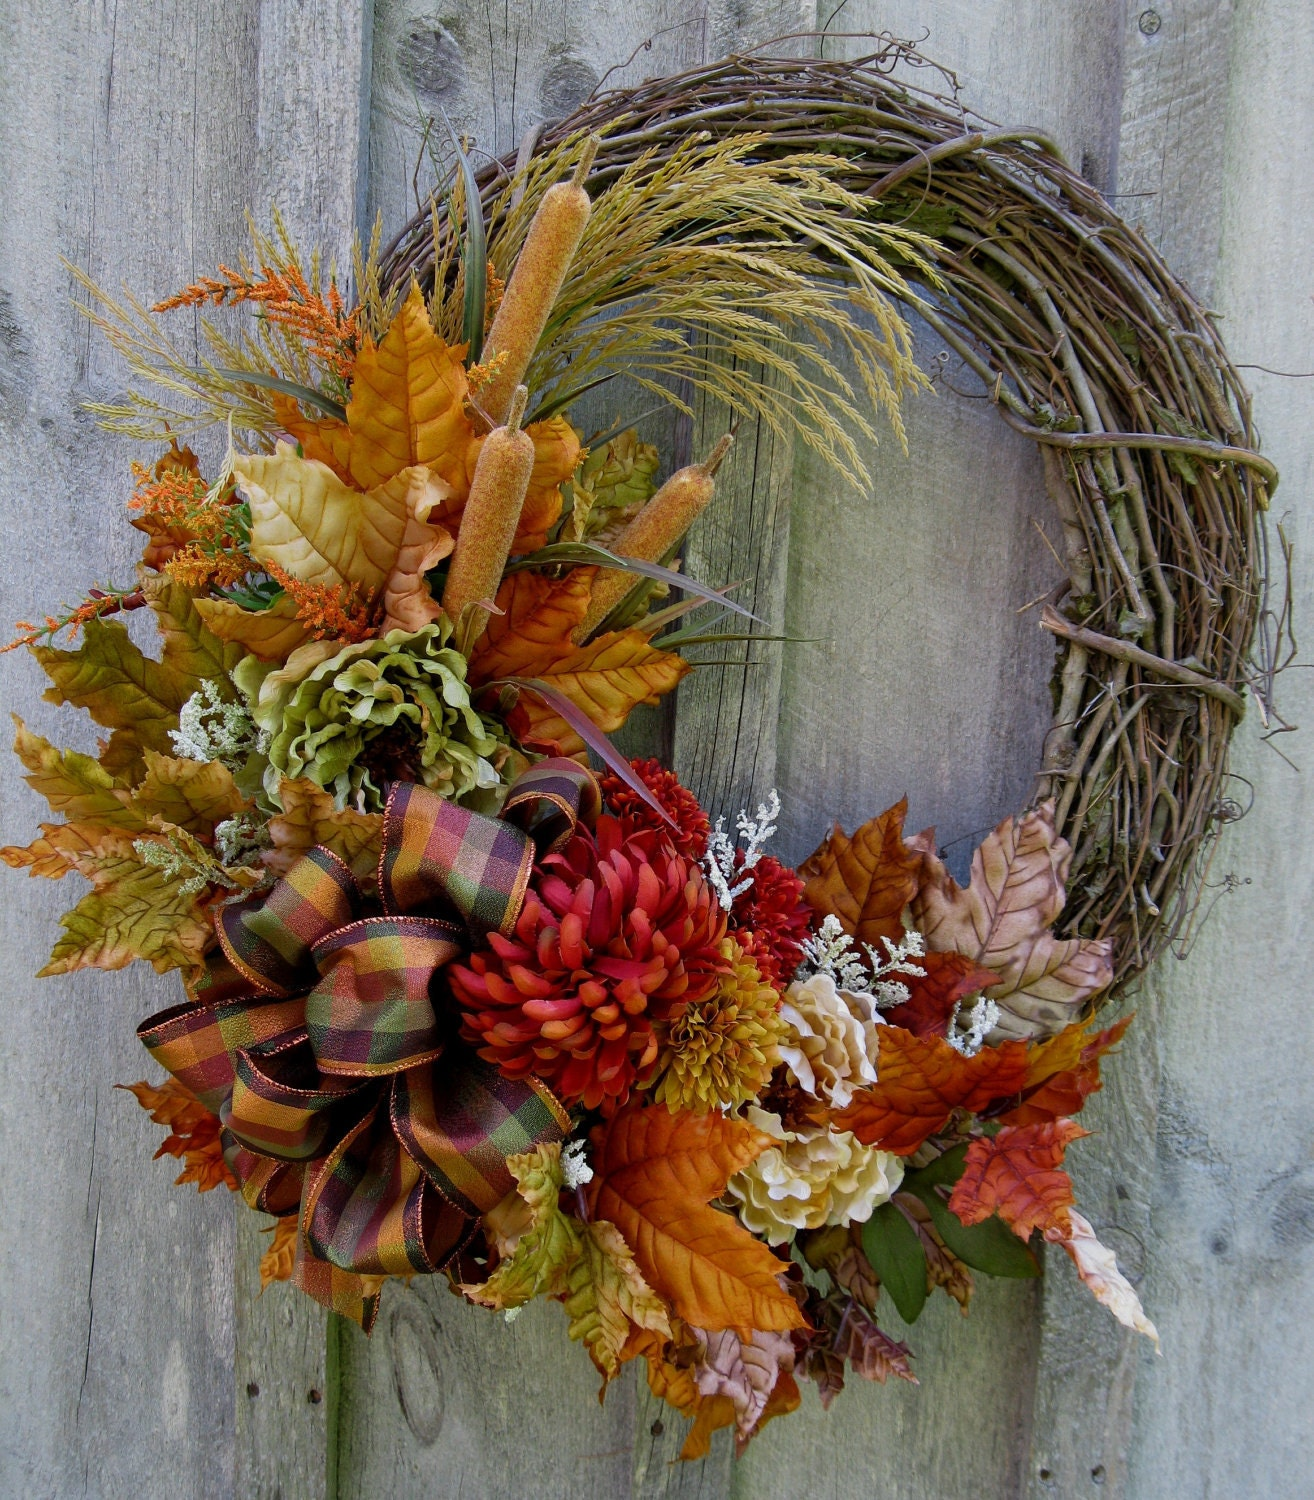 Autumn Wreath Fall Floral Wreaths Designer Decor Woodland